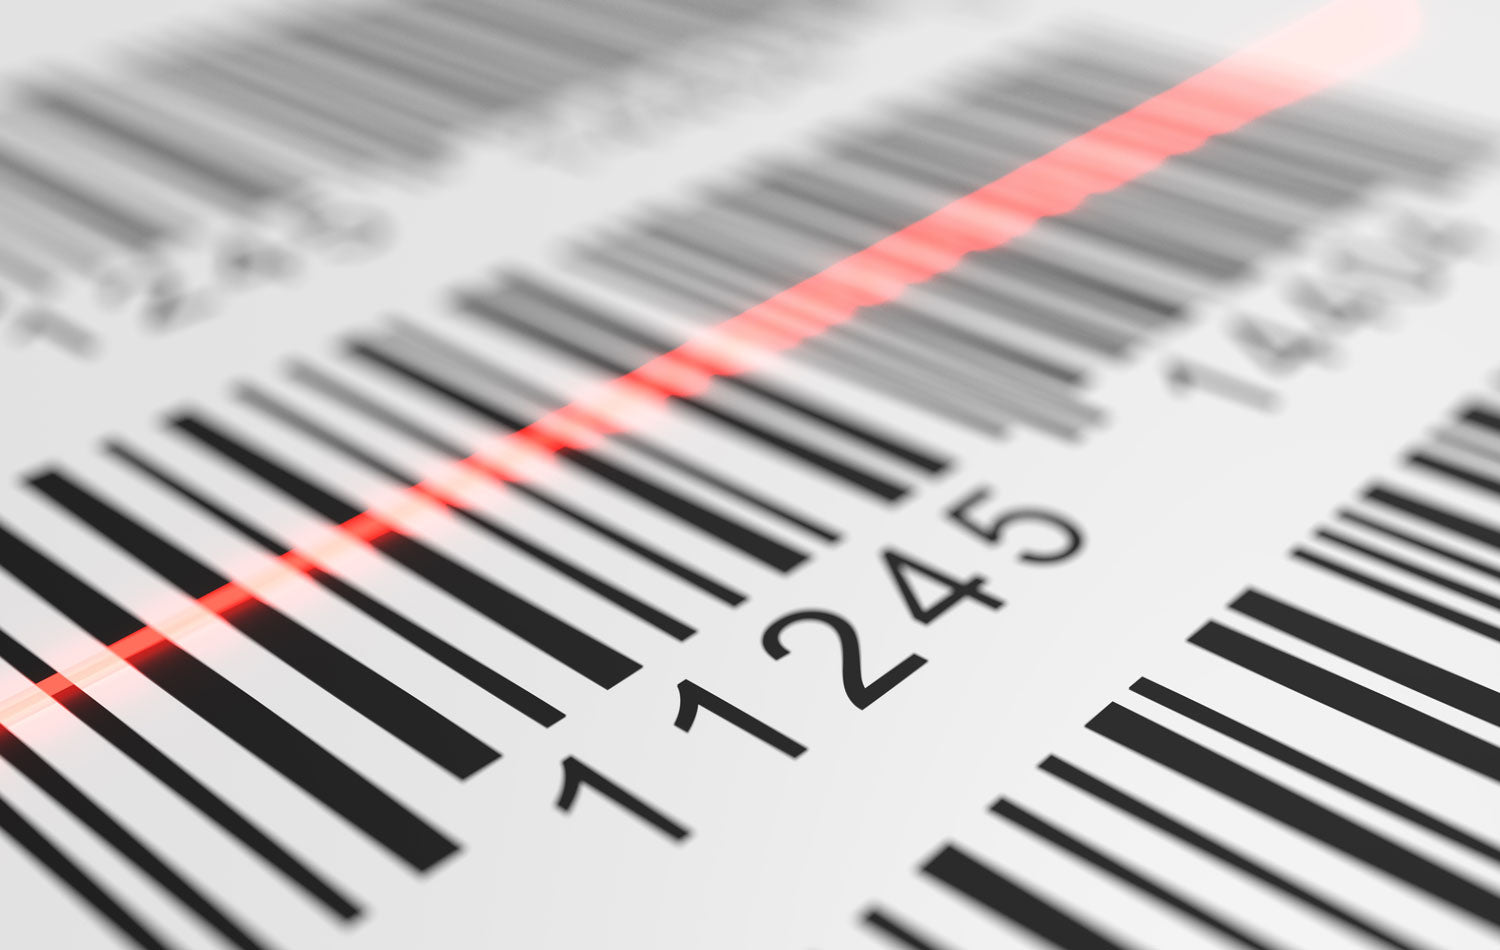 What can a barcode actually tell you?